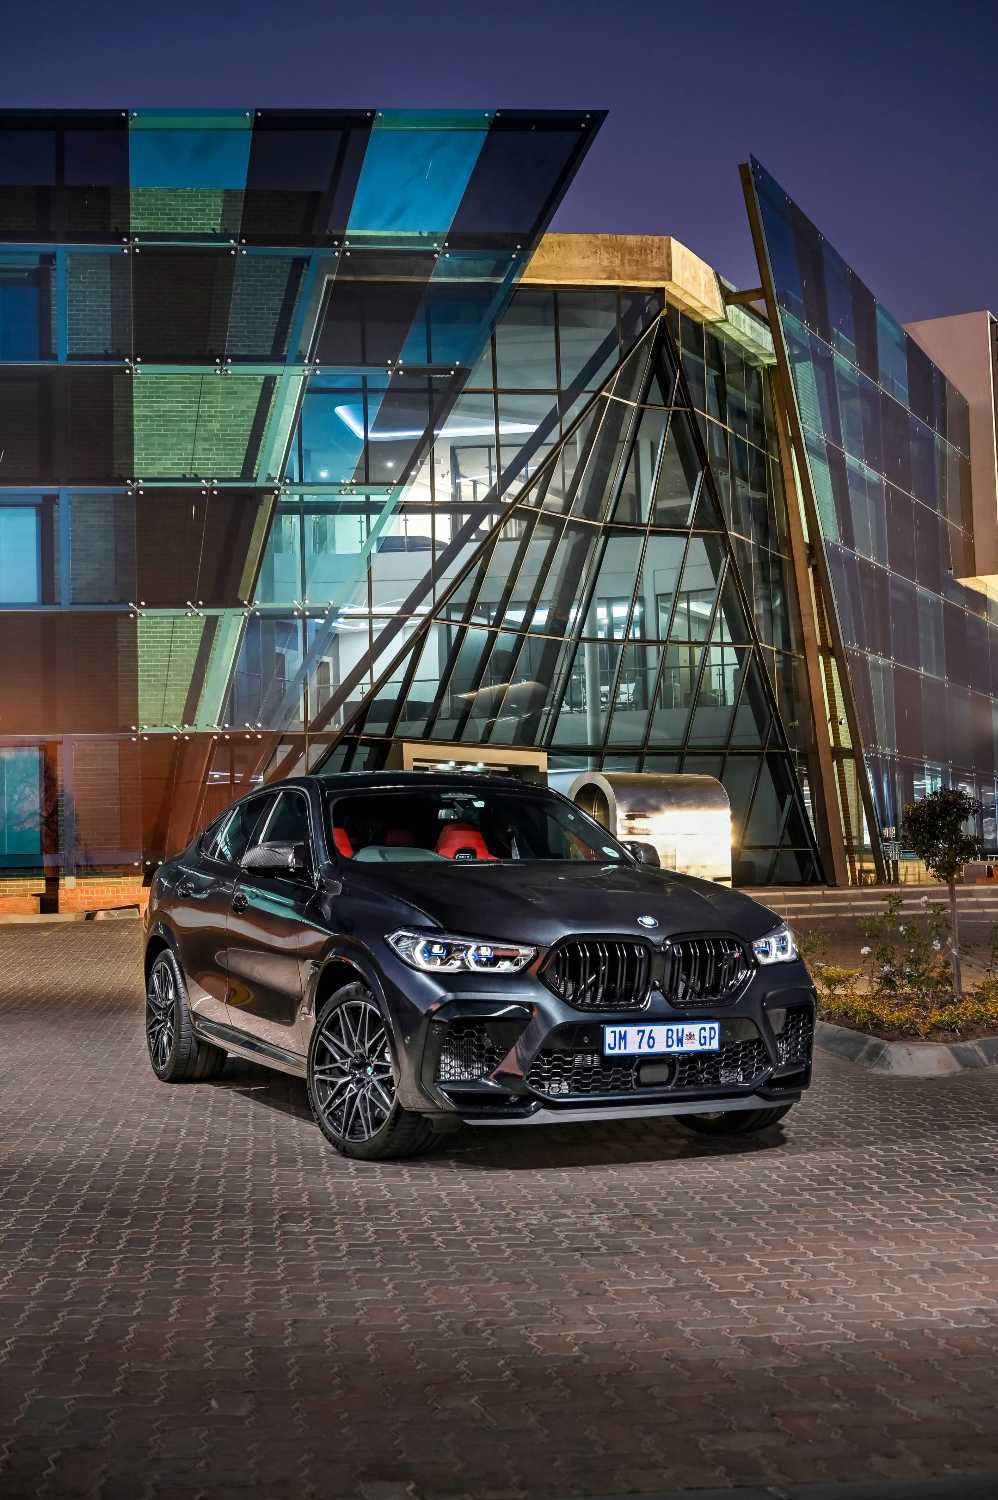 Bmw South Africa Unveils The Third Generation Bmw X5 M Competition And Bmw X6 M Competition